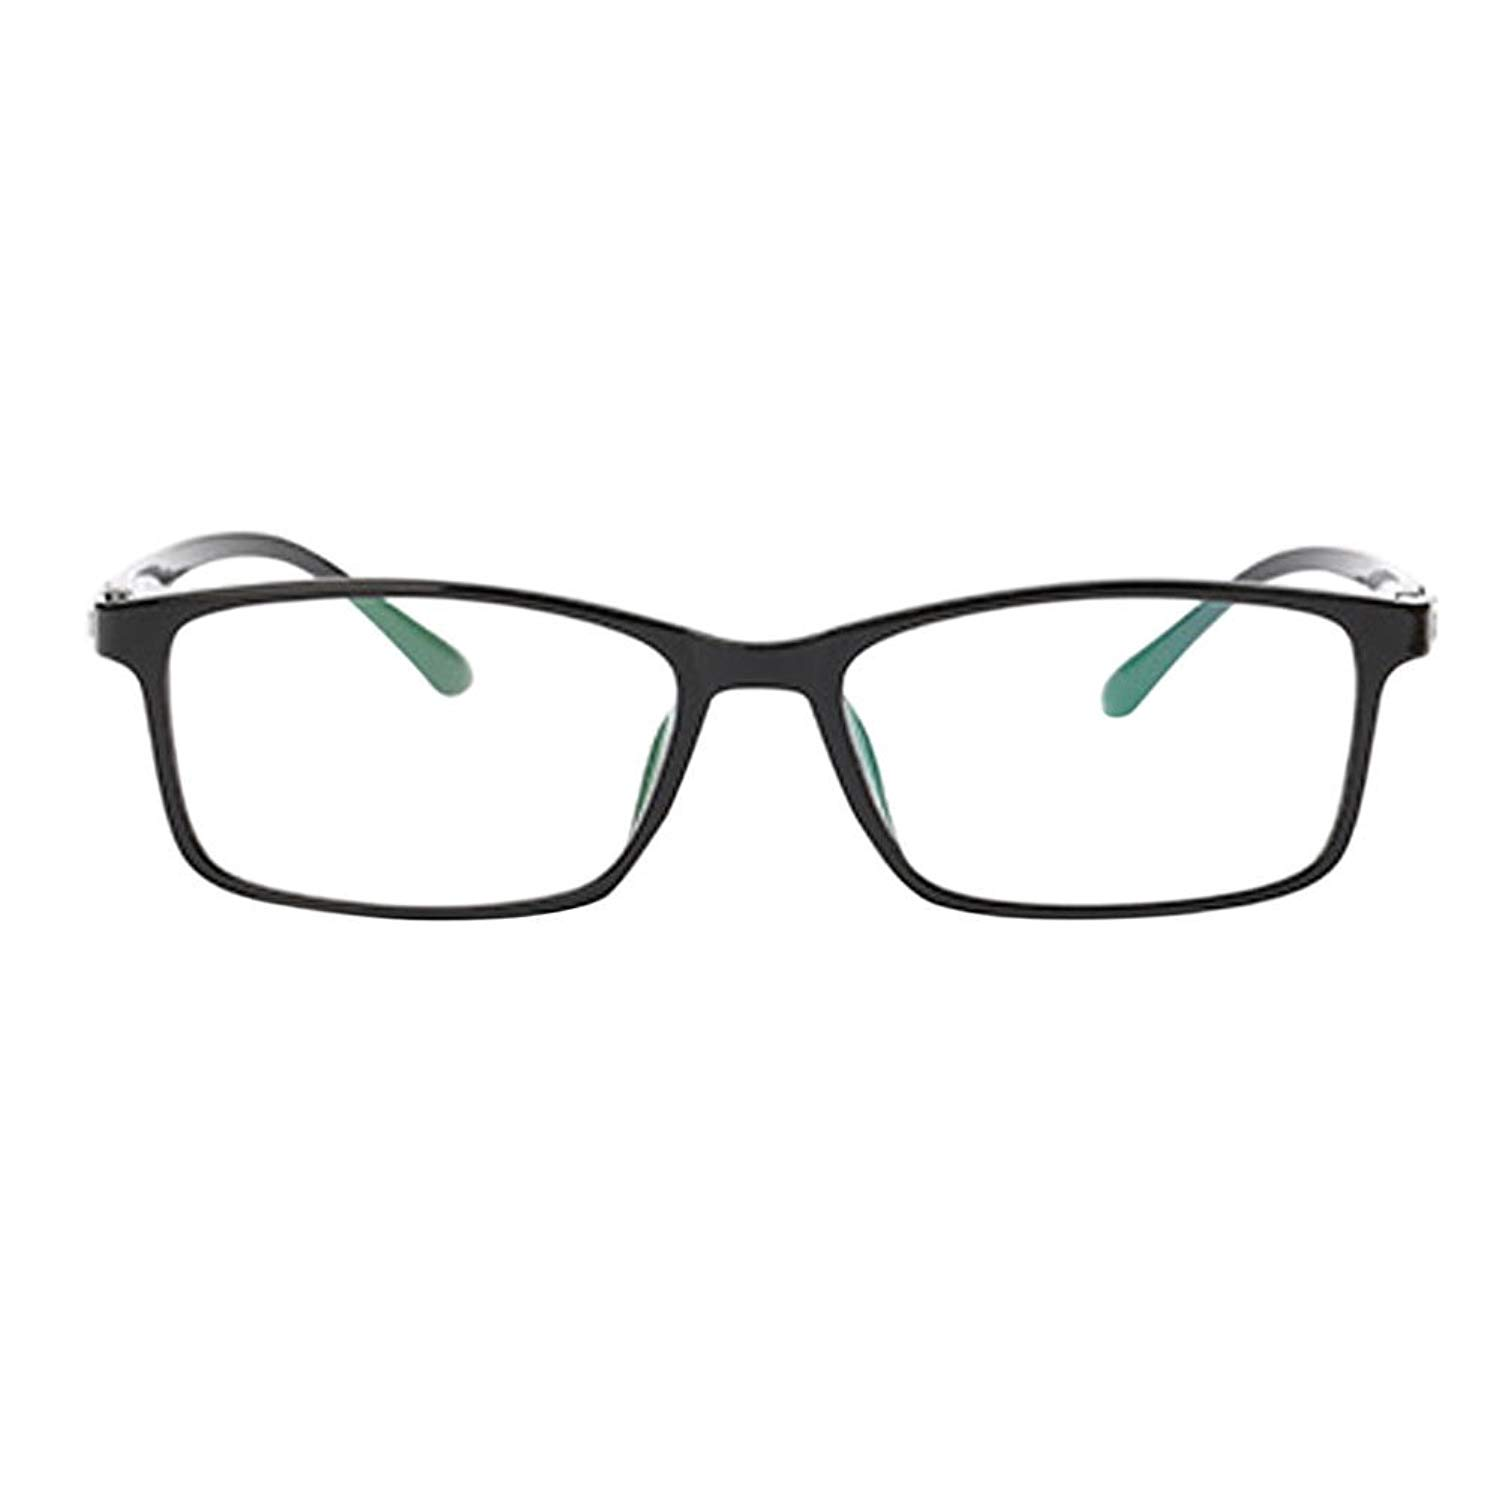 85548ed292f Buy Xinvision Ultra Light Colorful Frame Myopia Glasses